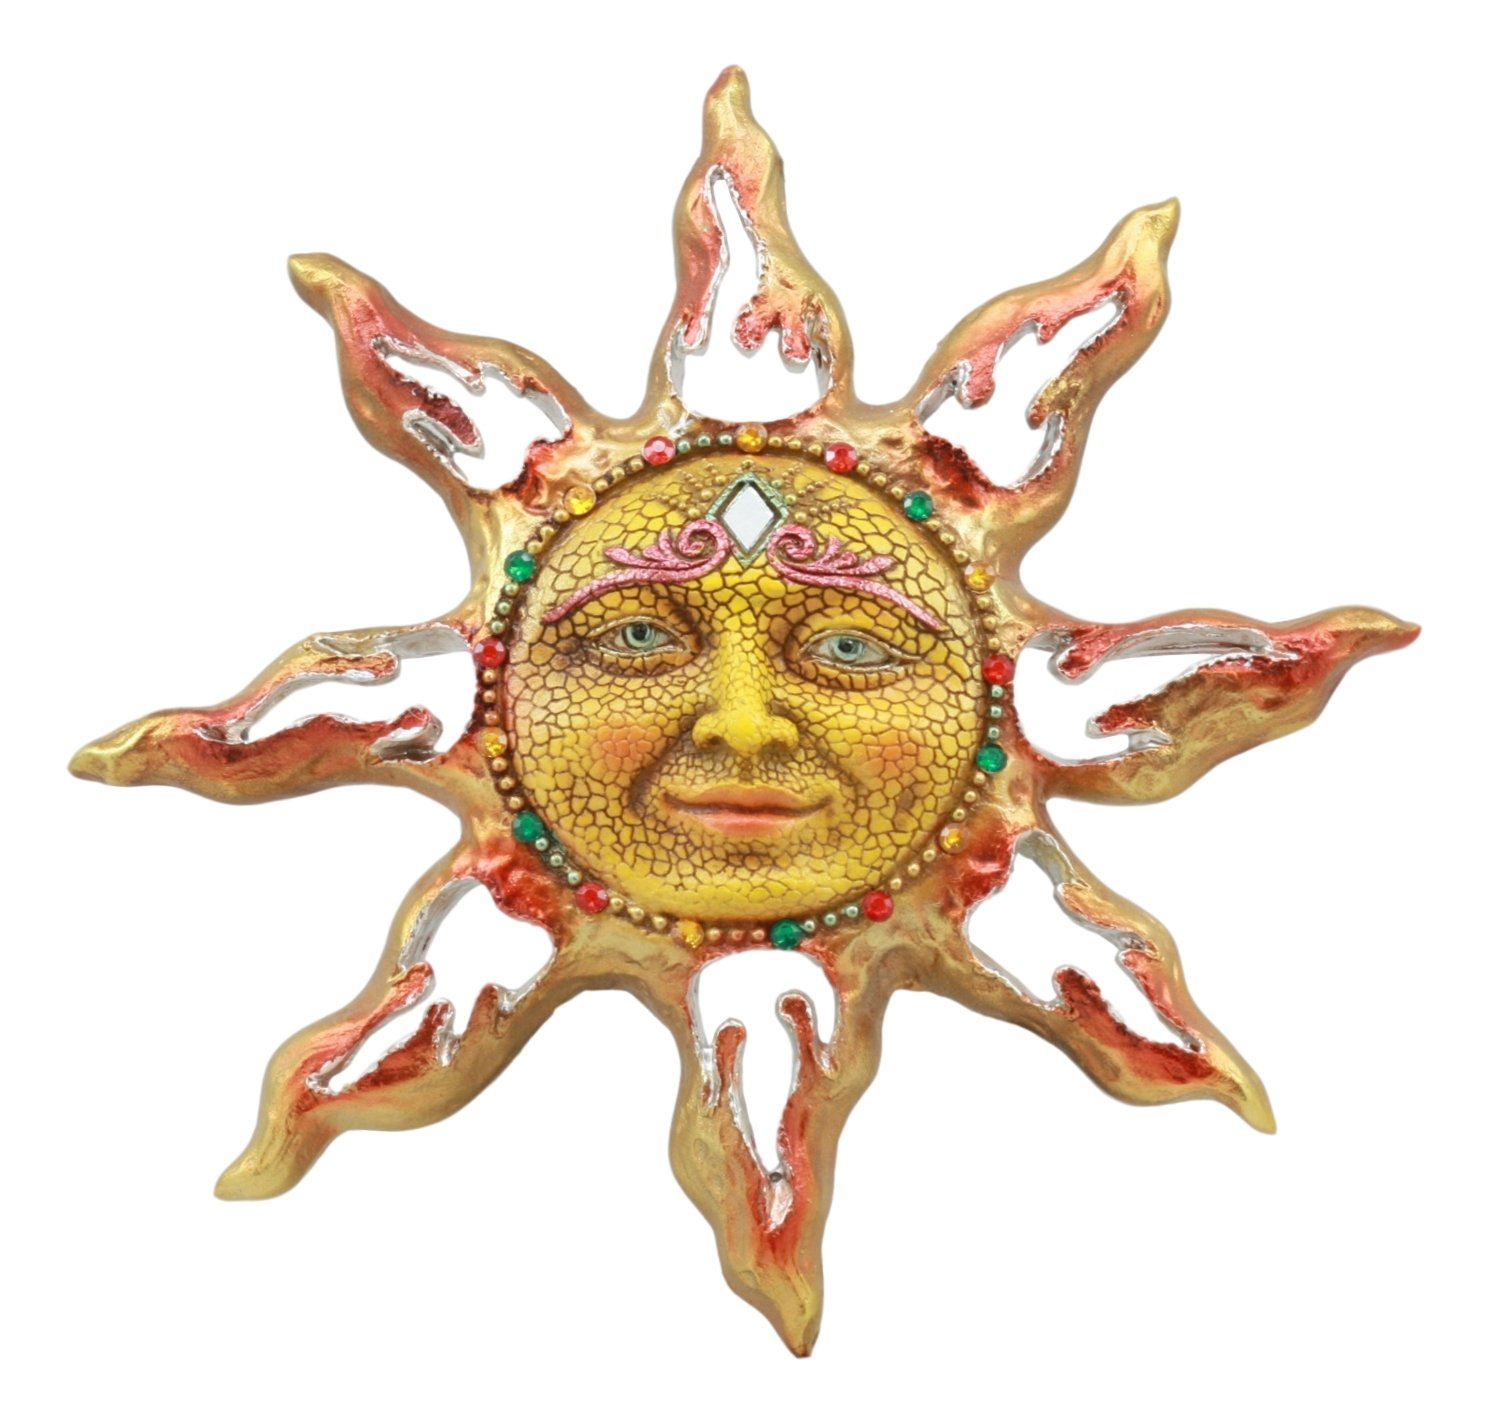 "Ebros Beautiful Mosaic Celestial Solar Radiant Surya Sun God Wall Decor 11""Wide 3D Figurine Home Decor Sun Face Wall Plaque"